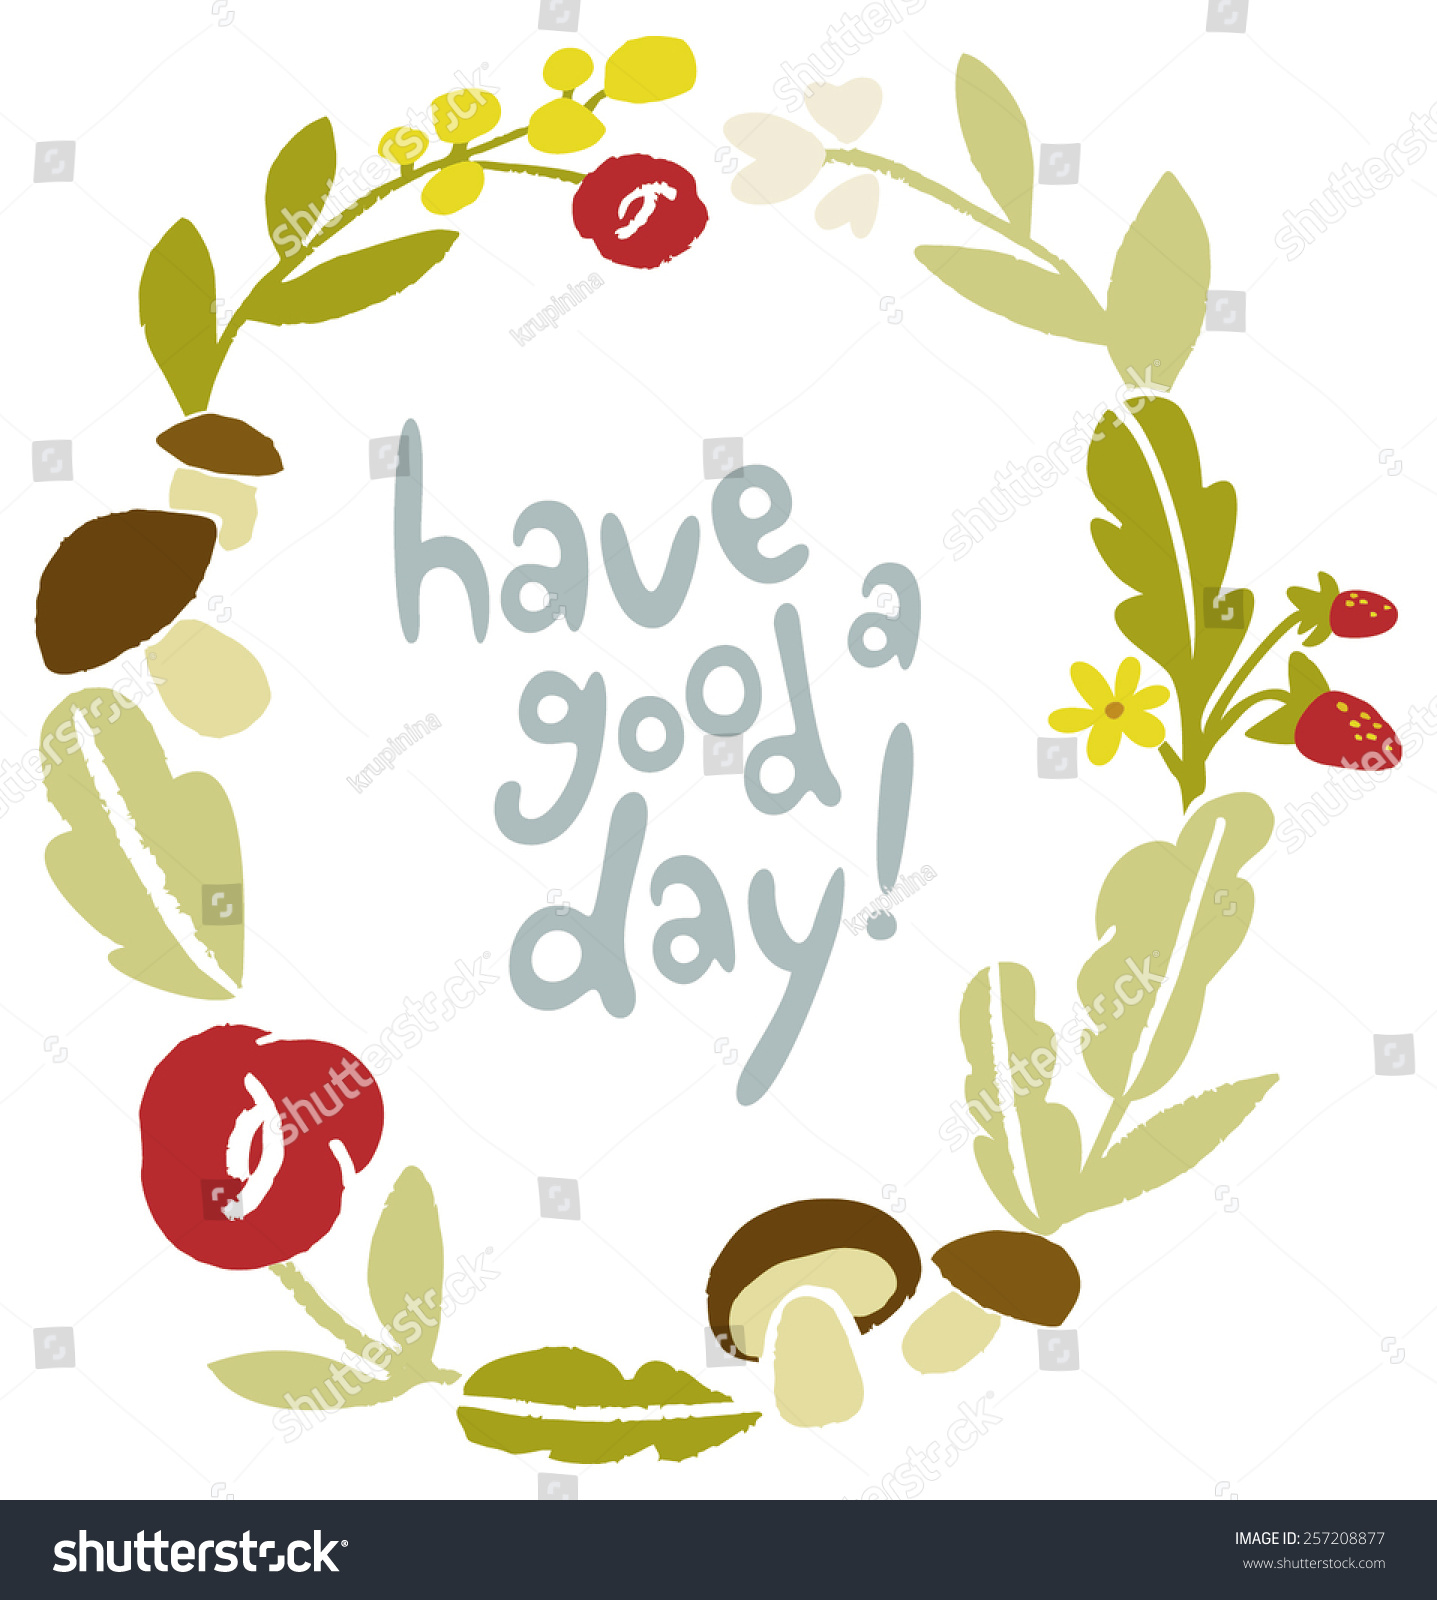 Have Good Day Nice Day Wishes Stock Vector Royalty Free 257208877